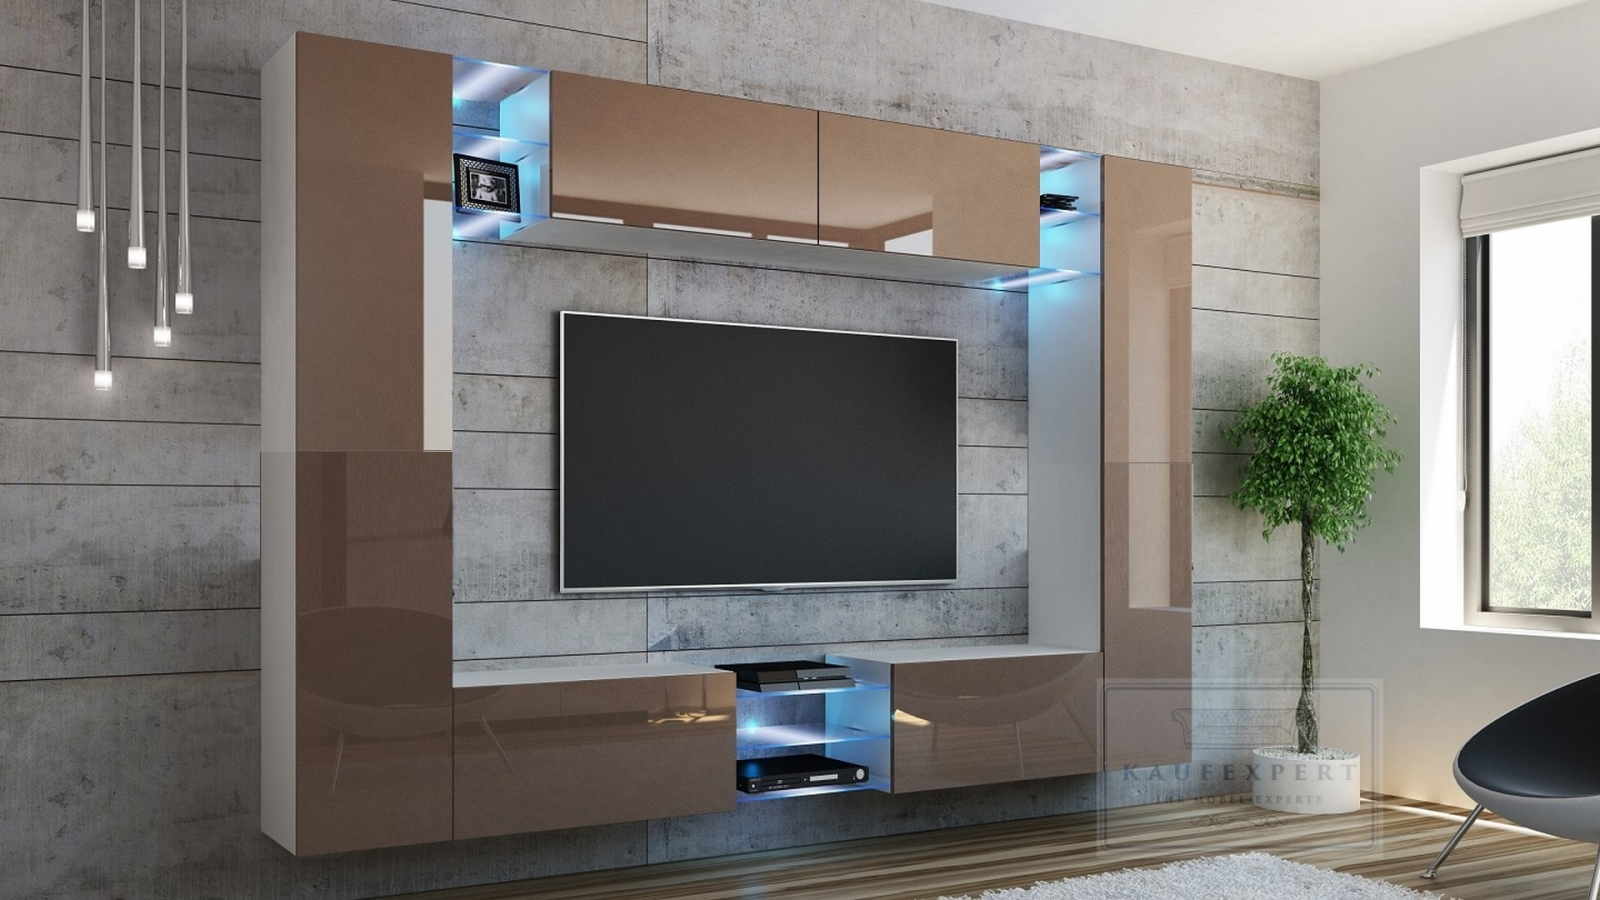 kaufexpert wohnwand kino cappuccino hochglanz wei mediawand medienwand design modern led. Black Bedroom Furniture Sets. Home Design Ideas